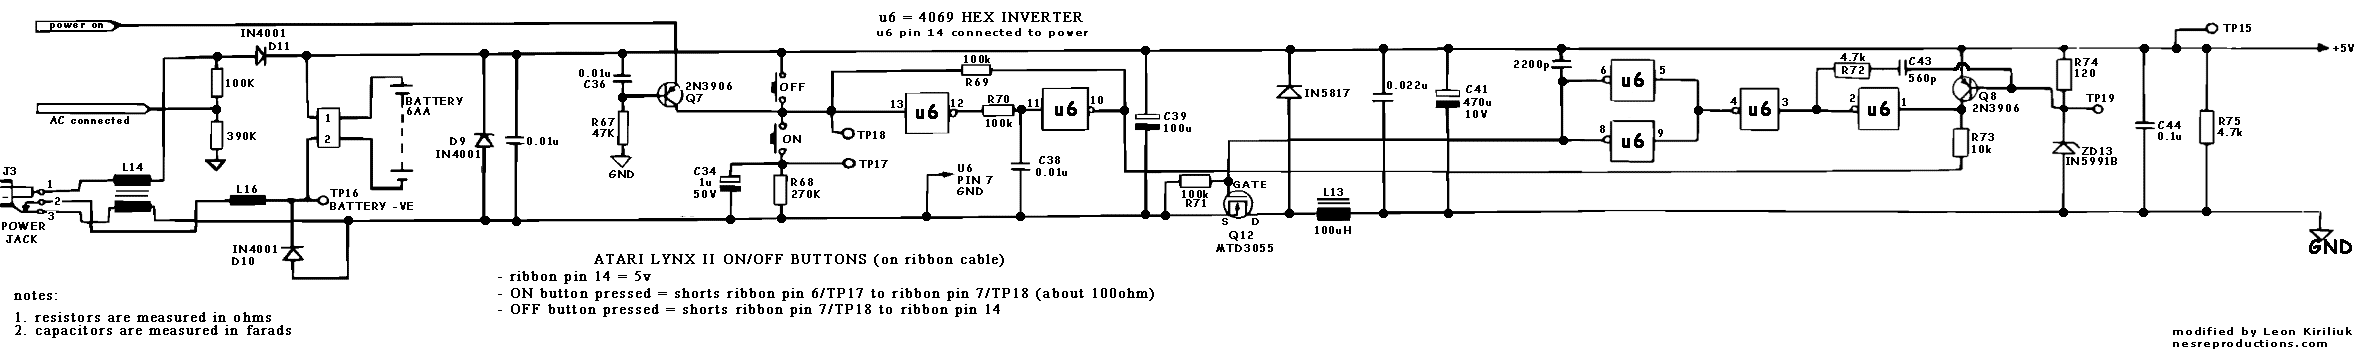 Atari Lynx II schematics for power .. - Atari Lynx - AtariAge Forums